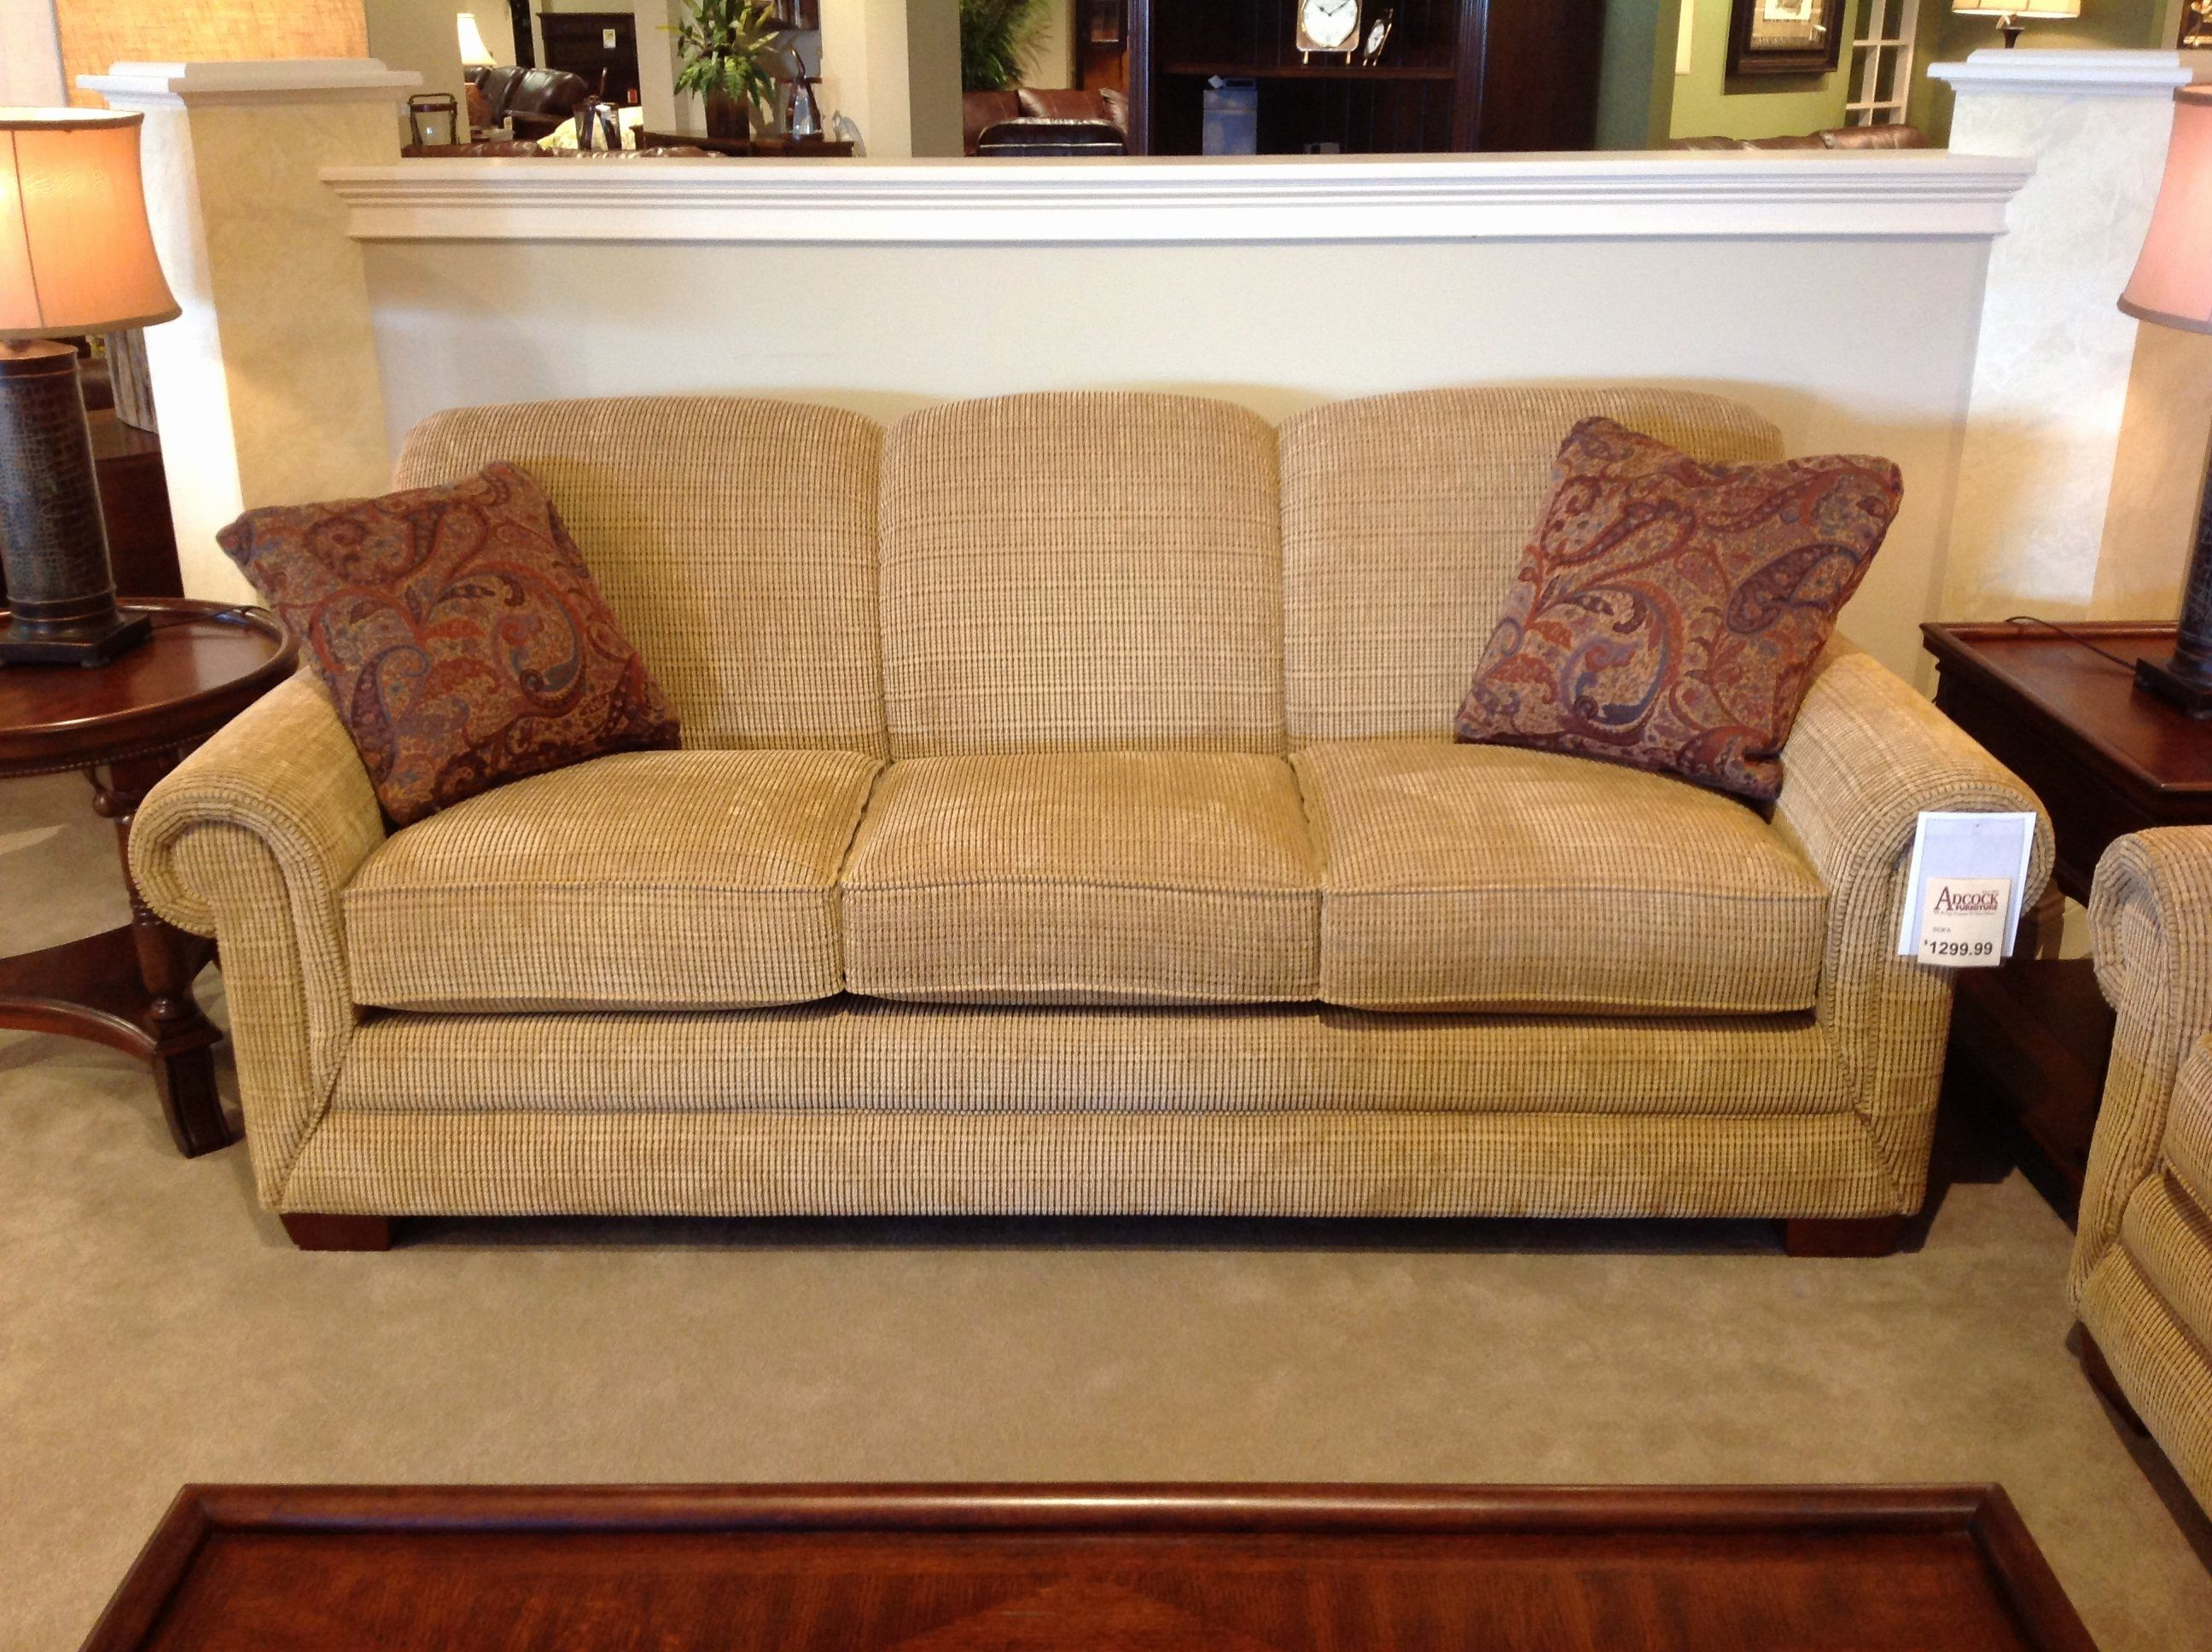 Lovely Home Theater Sleeper Sofa Picture Home Theater Sleeper Sofa Lovely  Incredible Lazy Boy Laurel Sofa